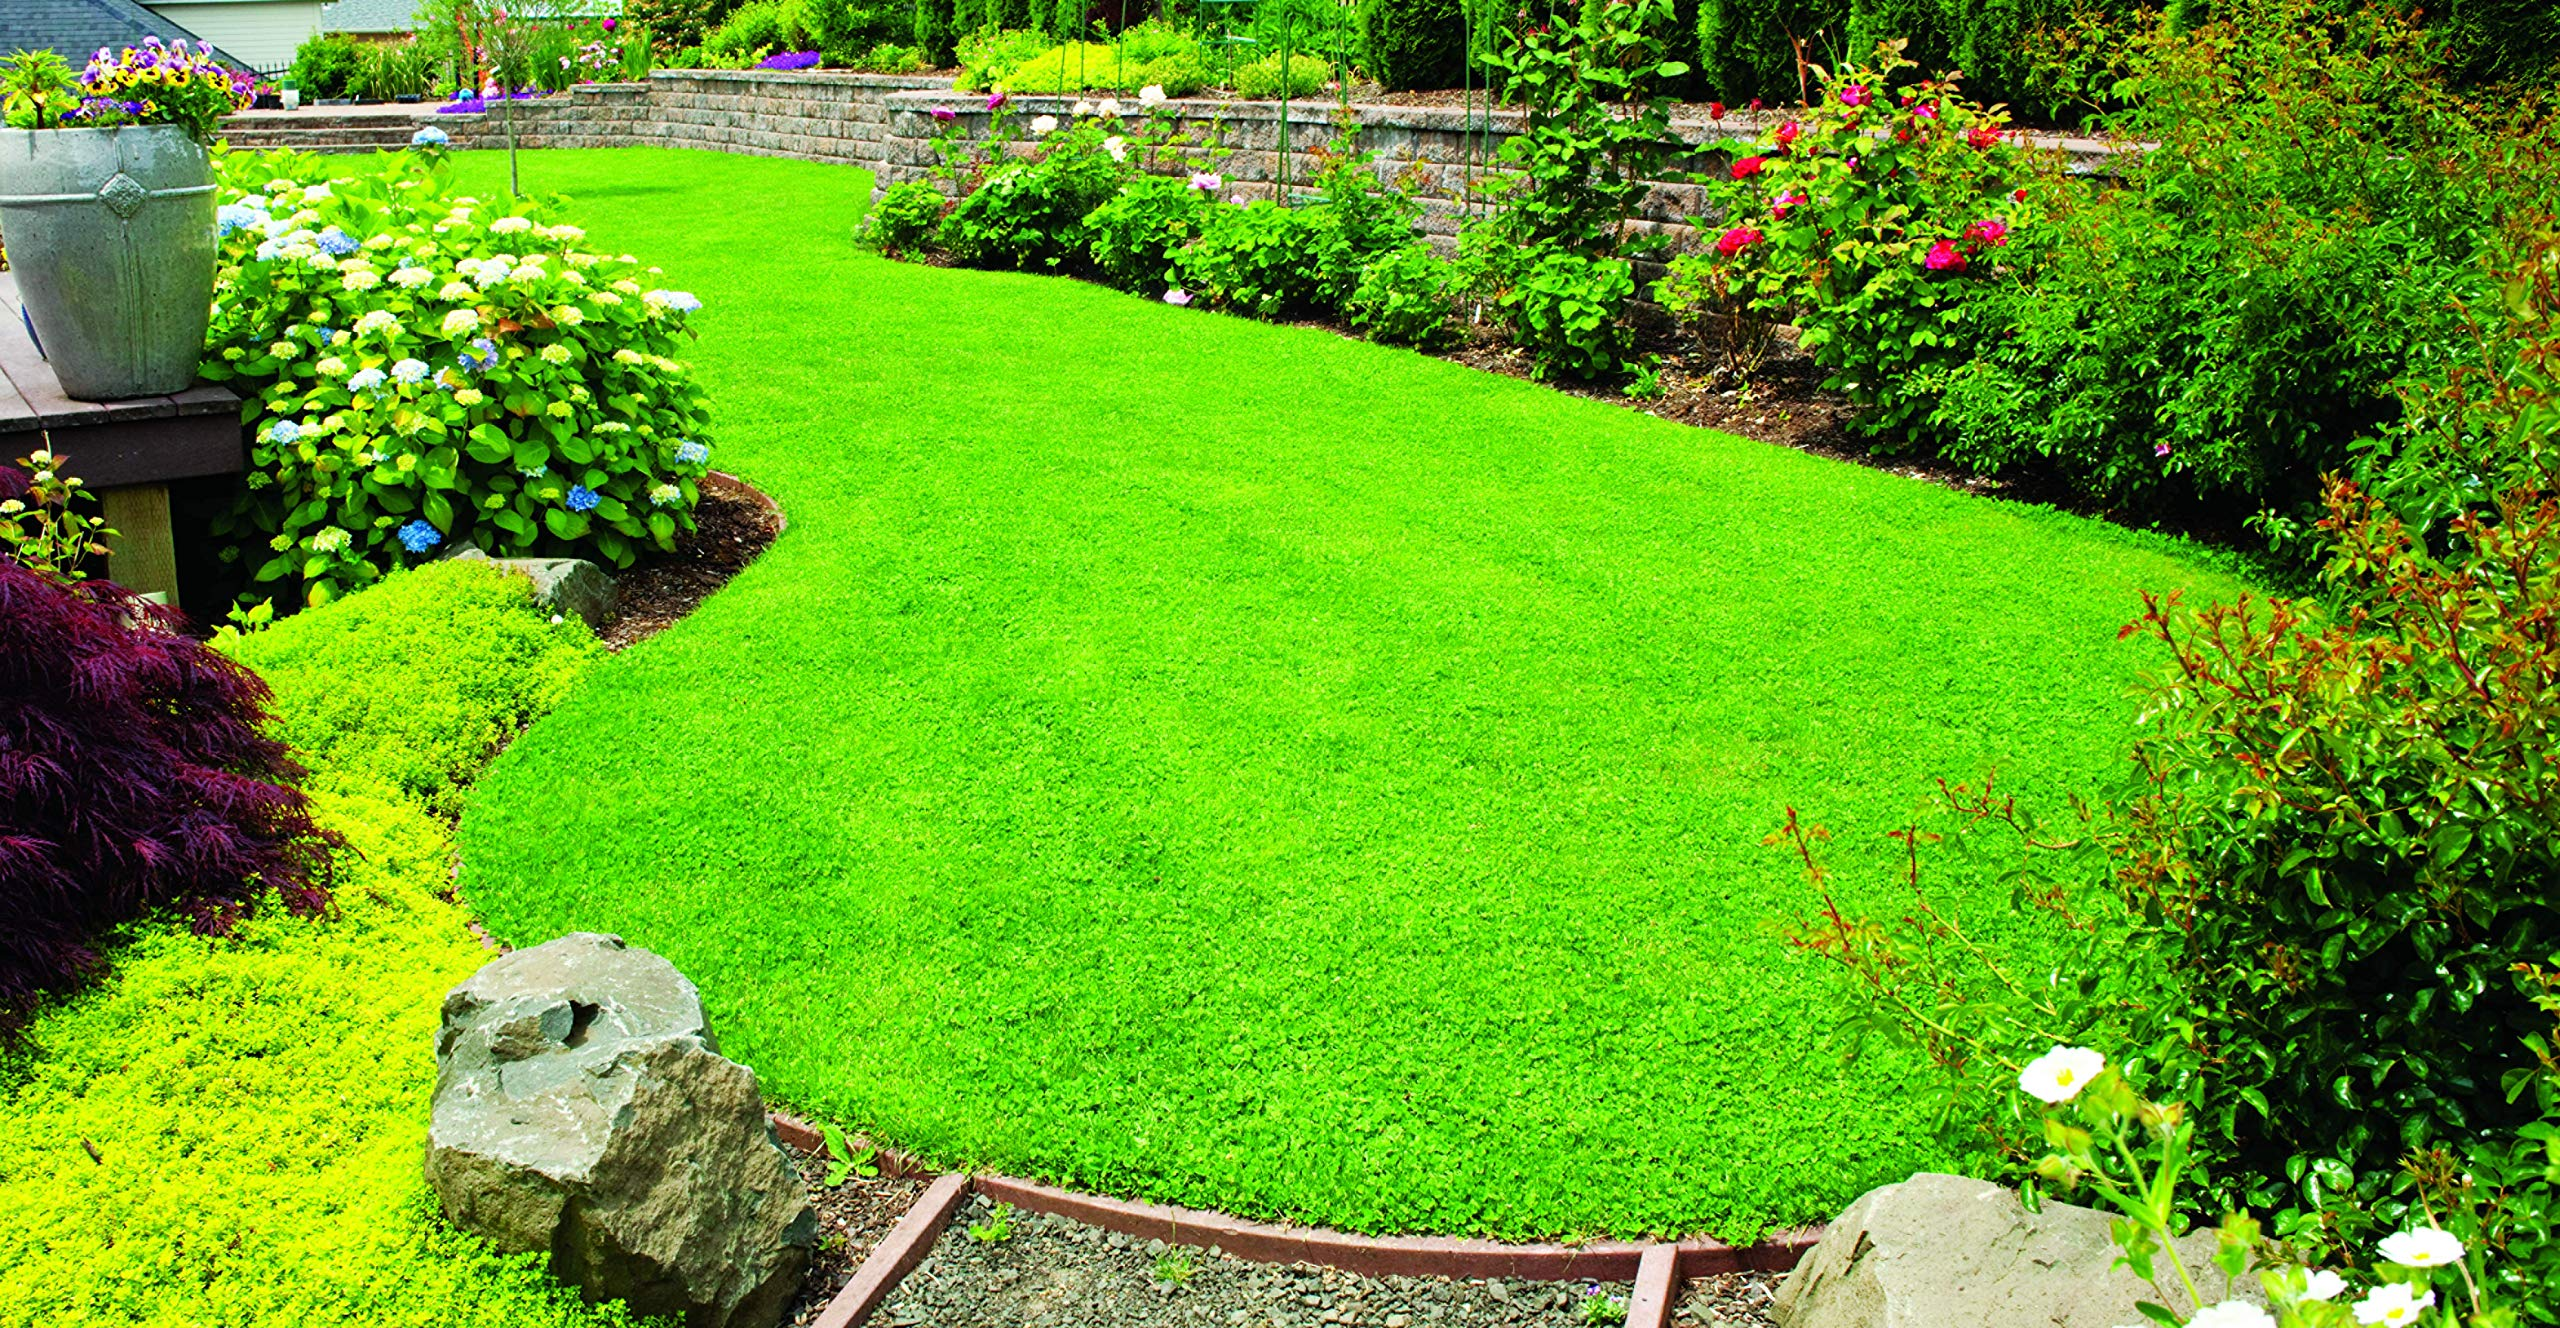 X-Seed 440AS0135UCT-5 MicroLawn Grass & Micro-Clover Mixture, 5, White by X-Seed (Image #5)